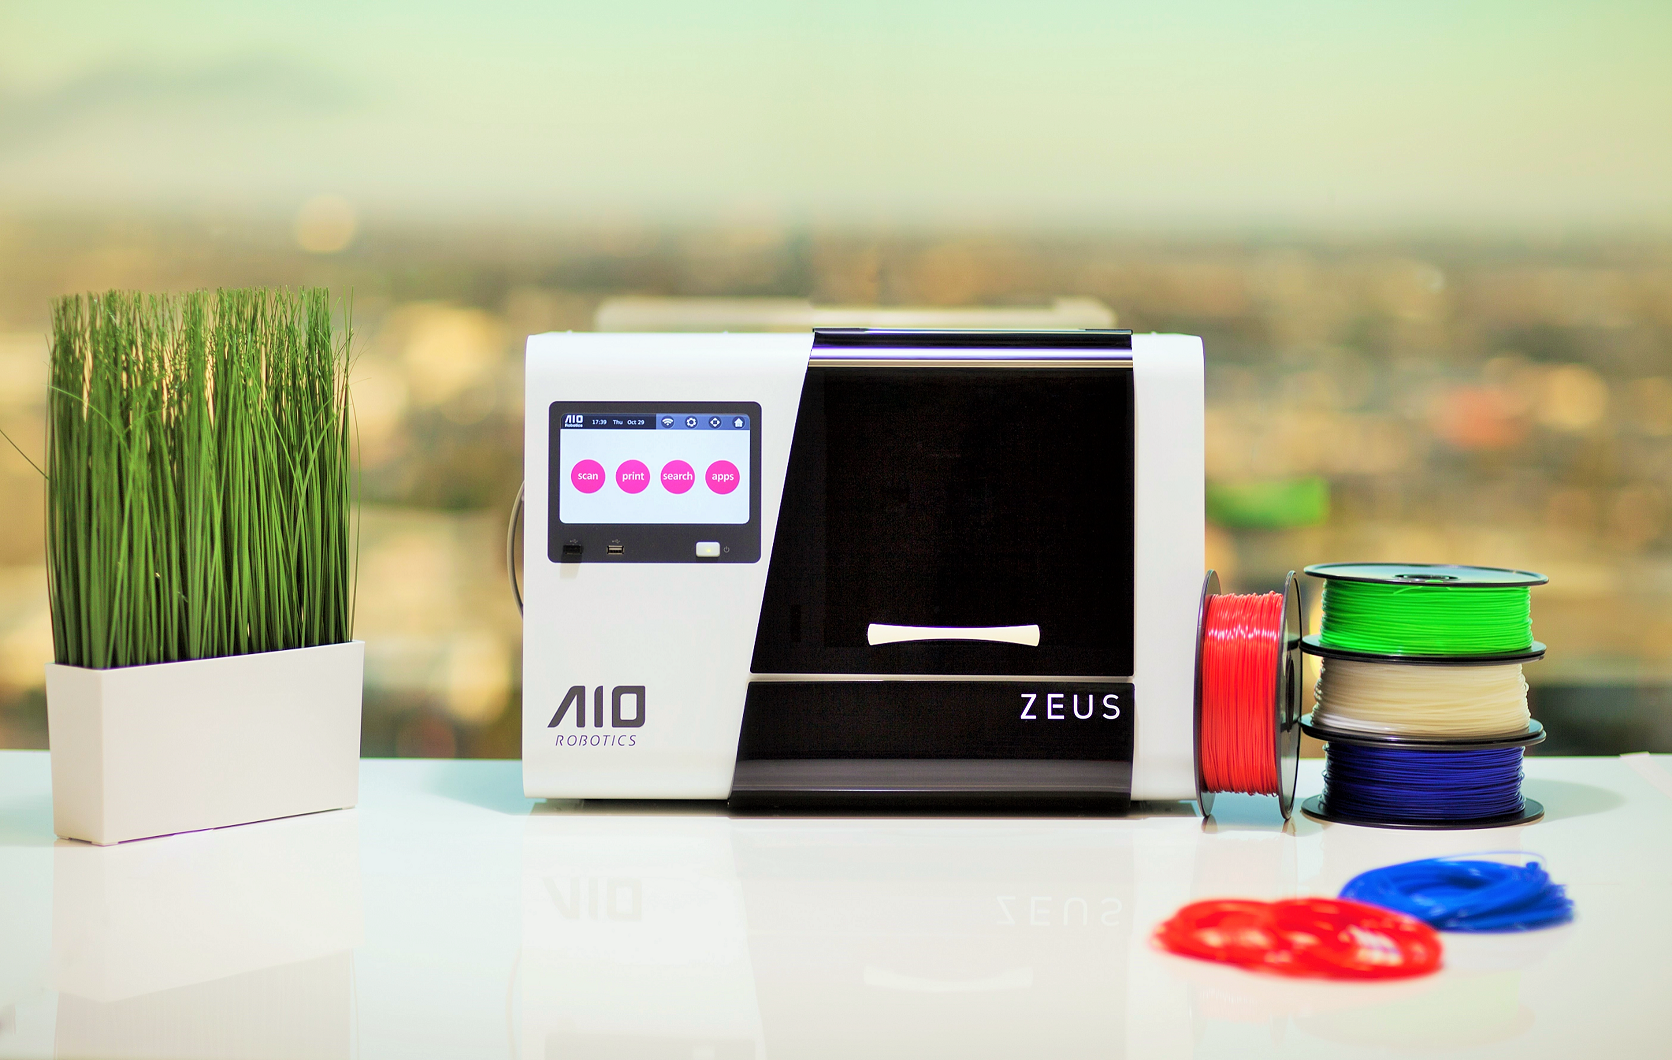 Zeus 3d printer editor scanner from aiorobotics on tindie 3d editor